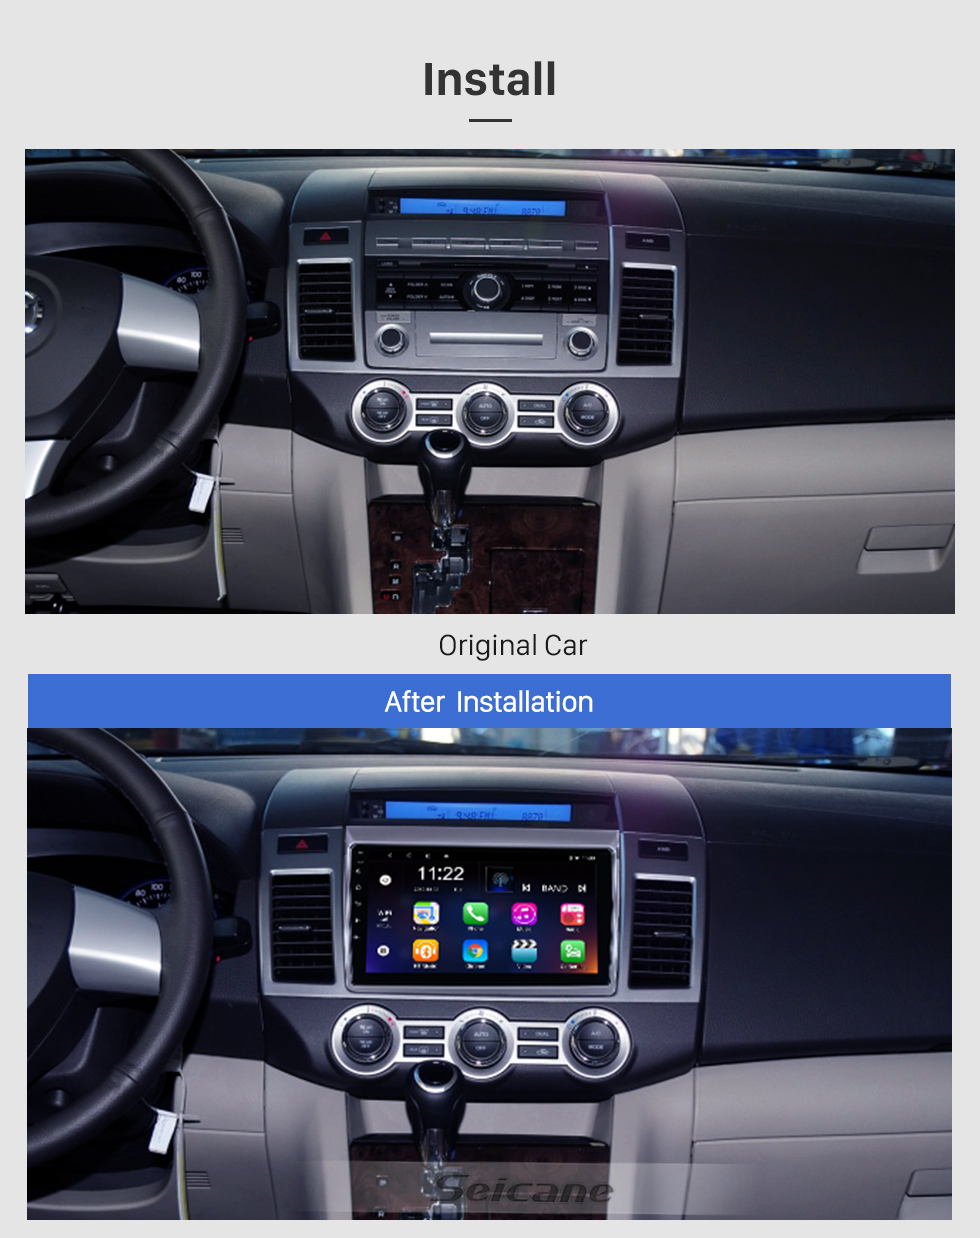 Seicane For 2011 Mazda 8 Radio 9 inch Android 10.0 HD Touchscreen GPS Navigation System with WIFI Bluetooth support Carplay TPMS